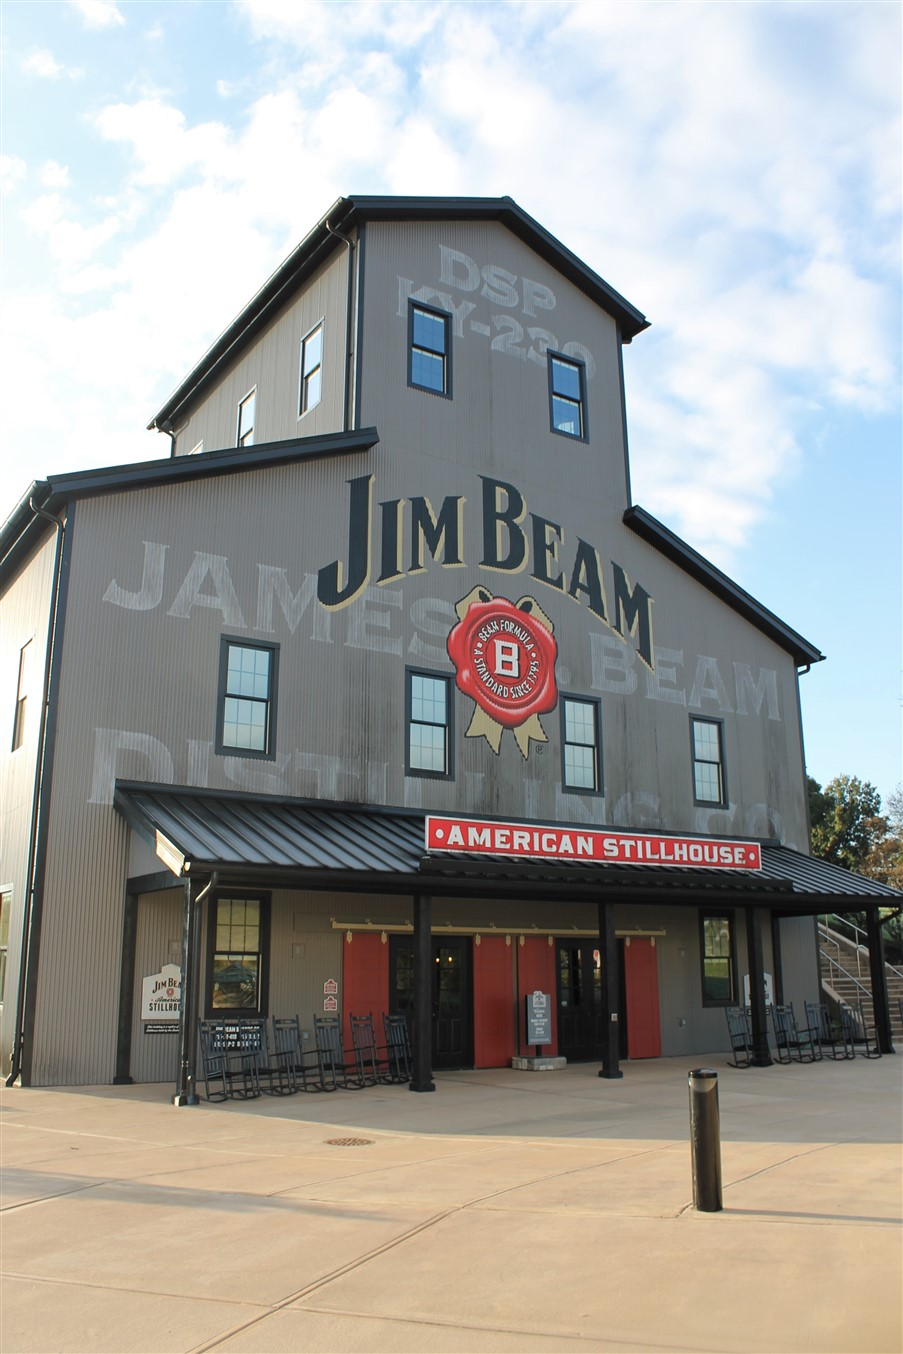 2013 10 26 6 Jim Beam Tour Clermont KY.jpg